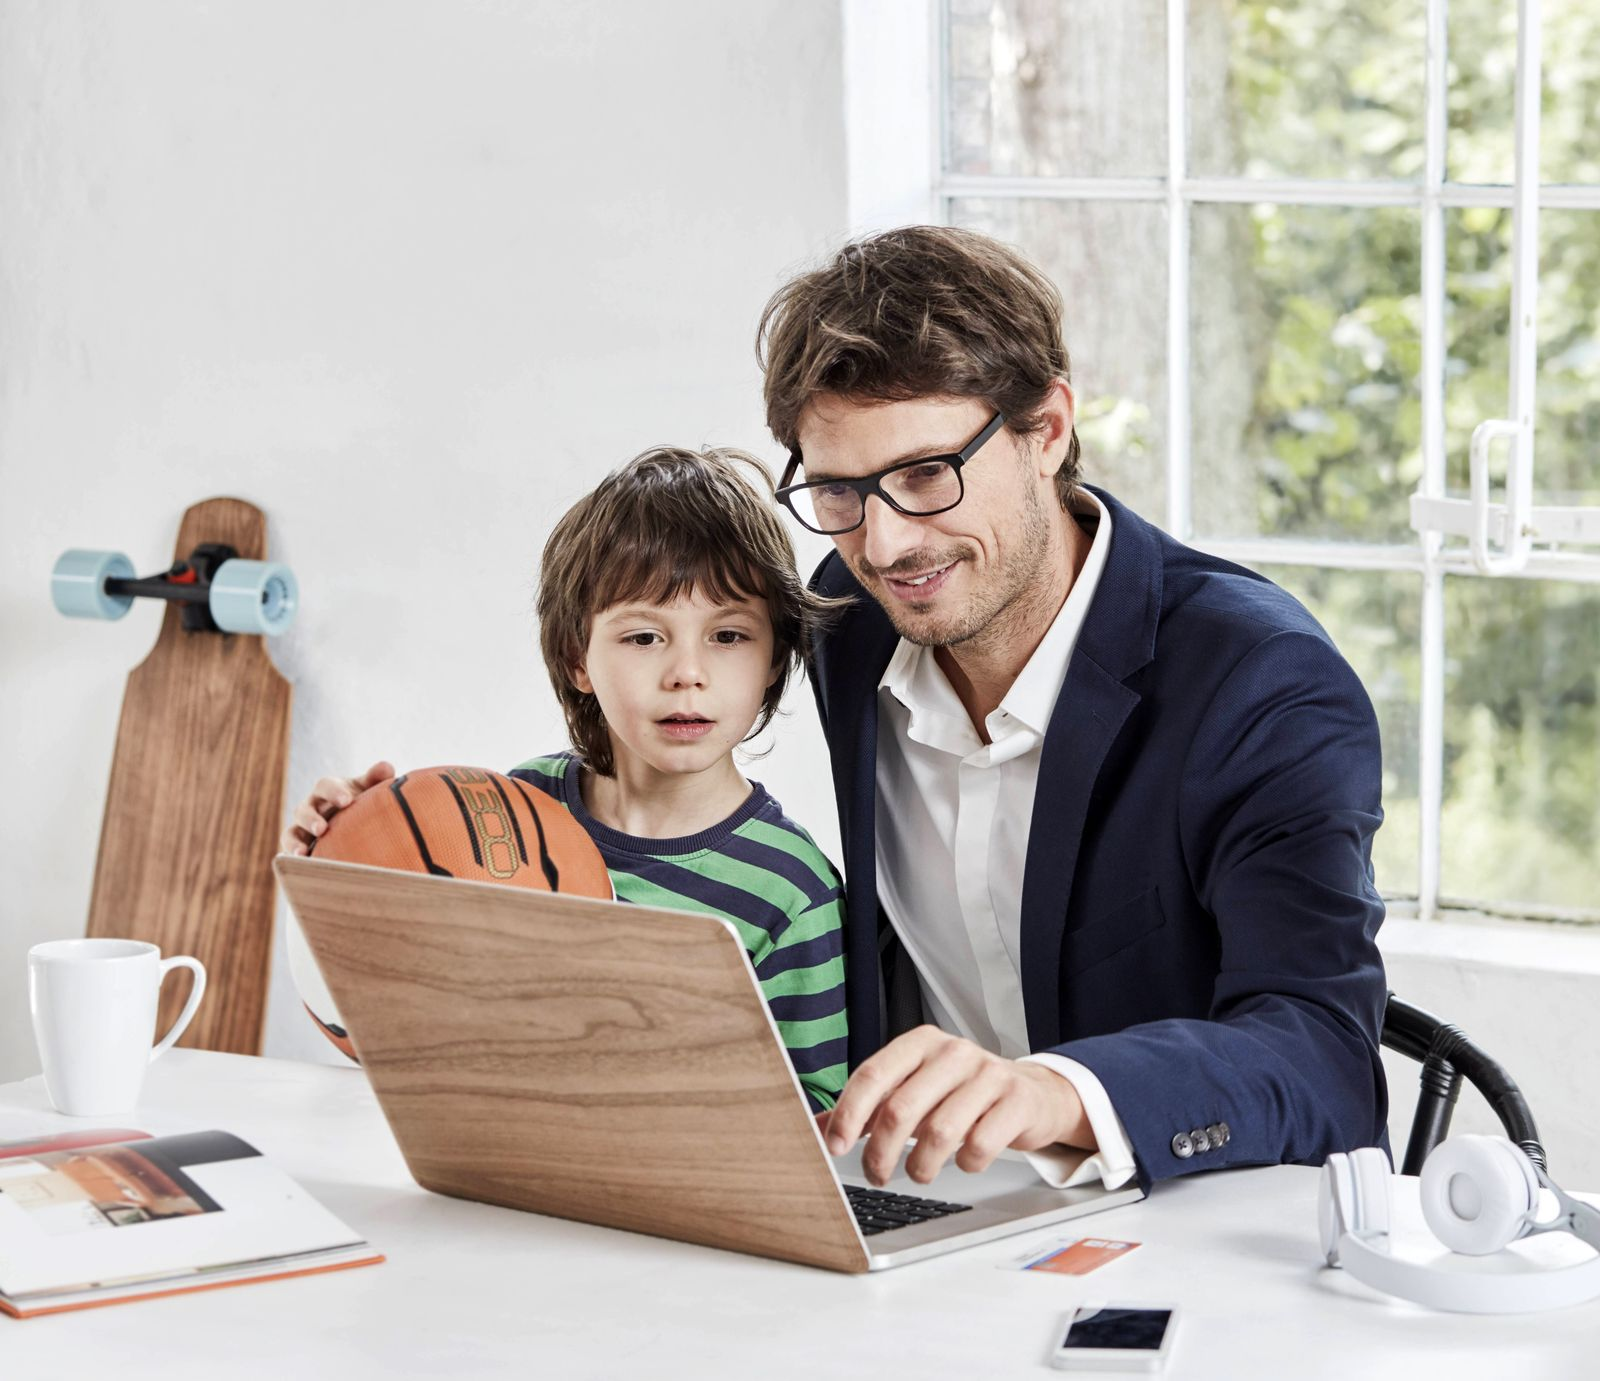 Businessman and son using laptop at desk model released Symbolfoto property released PUBLICATIONxINx